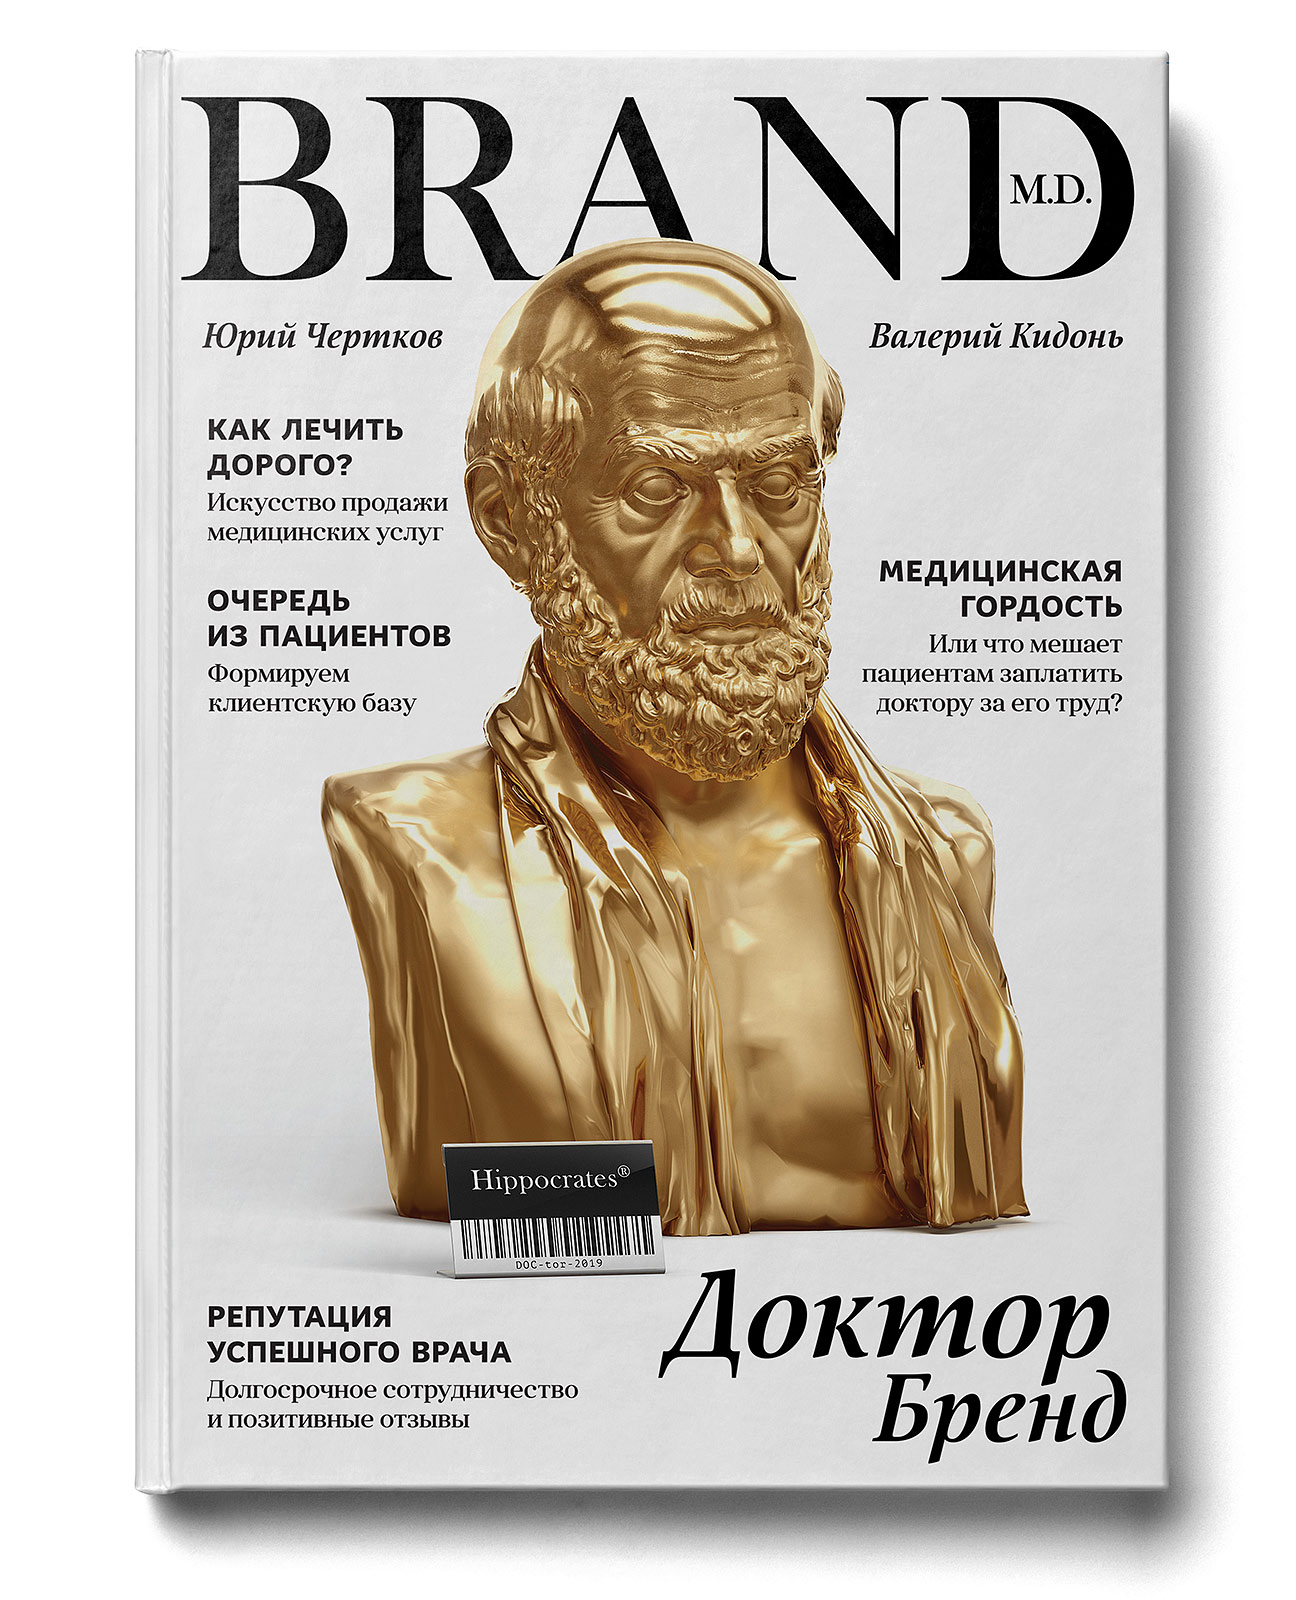 Brand M.D. book. Doctor Brand. A golden bust of Hippocrates, 3D model. Book cover design, front side.